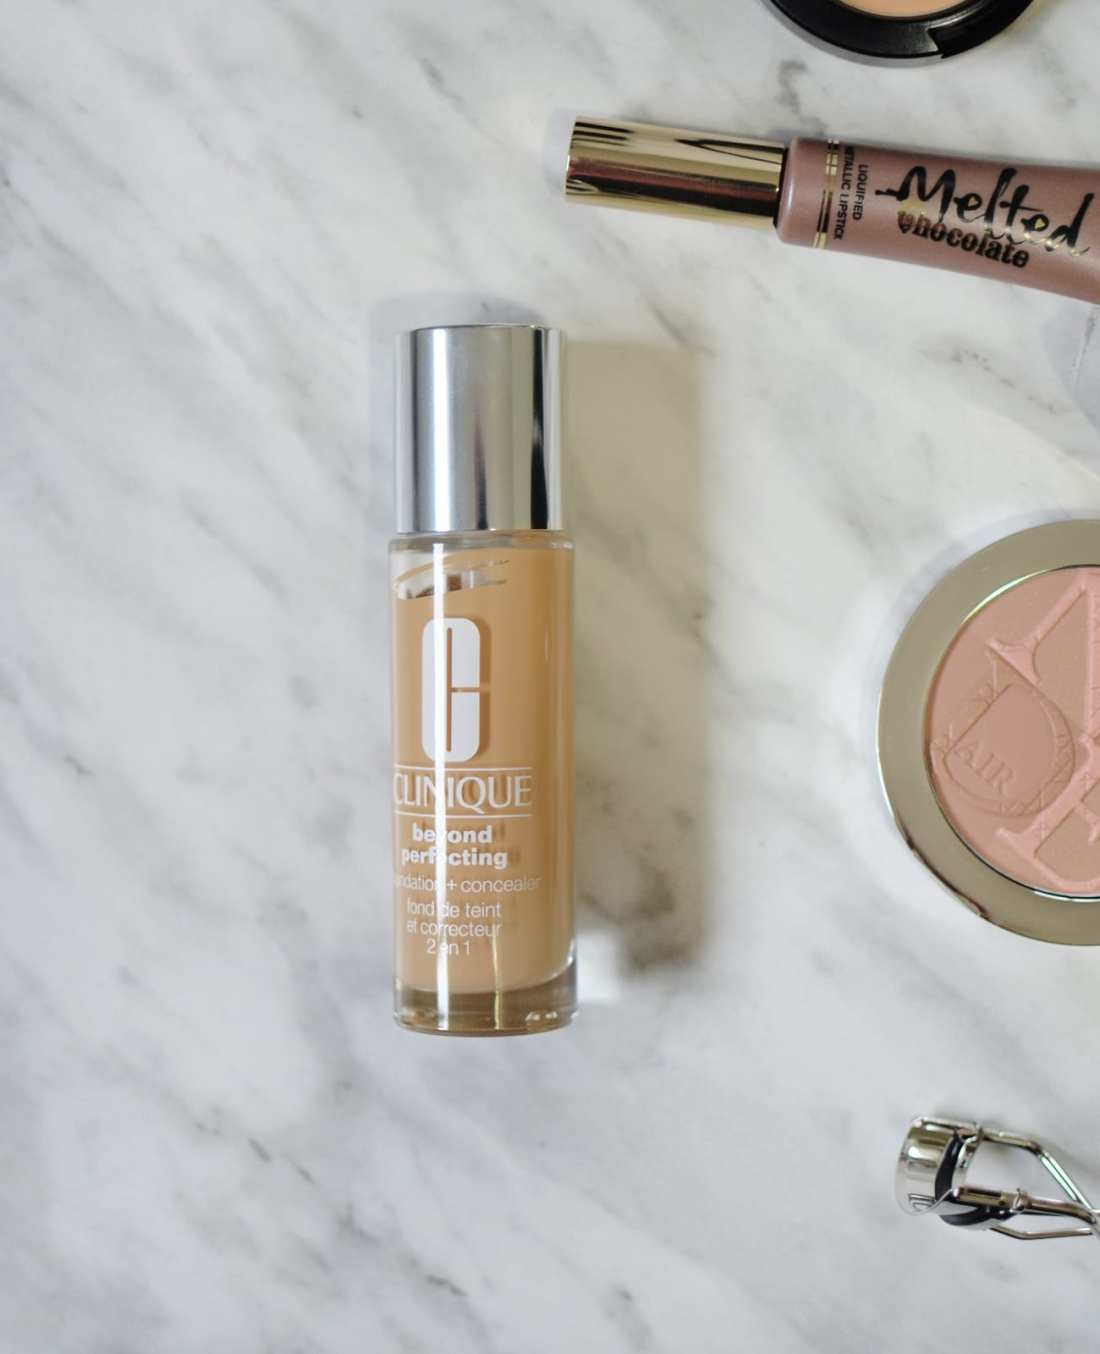 The Clinique Beyond Perfecting Foundation is one of the more interesting foundation from their range with great shade selection and formula.